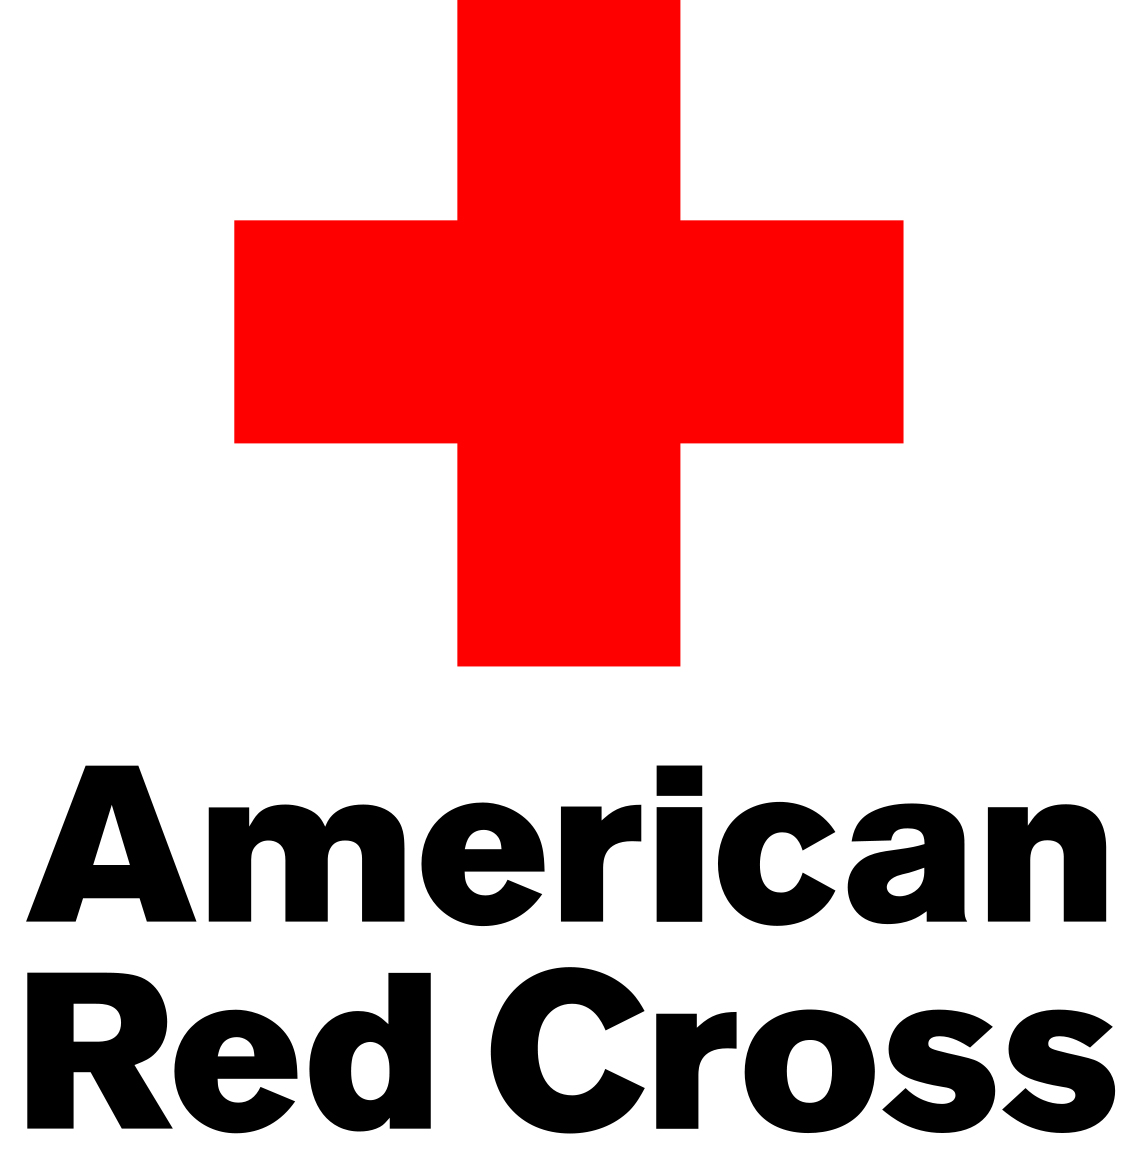 Meaning and history American Red Cross Logo